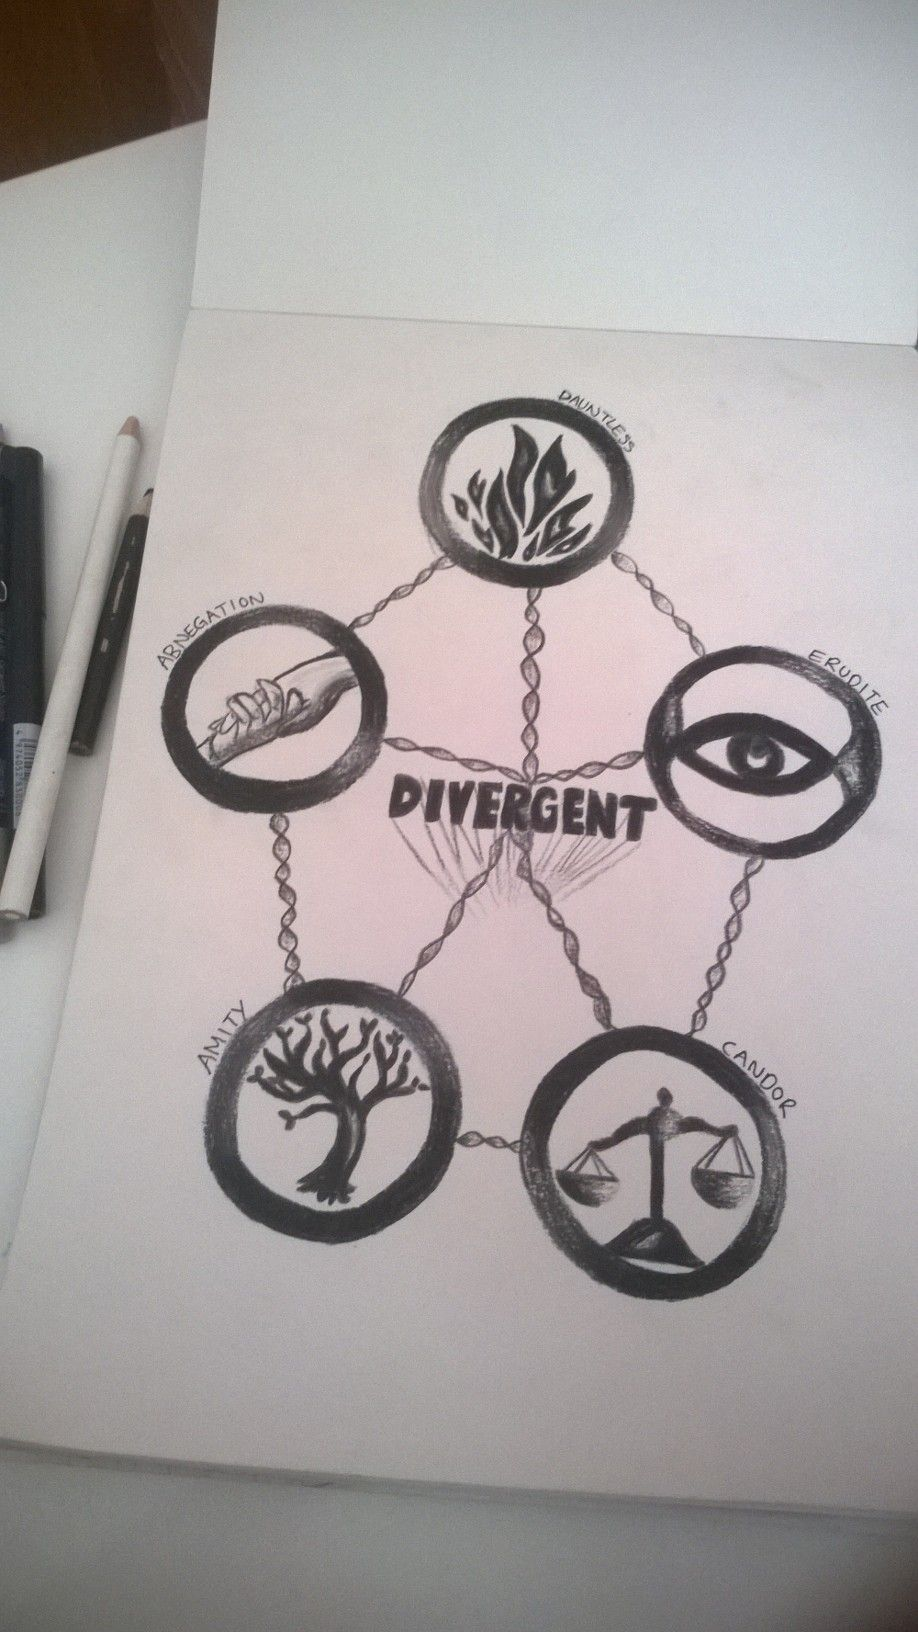 divergent symbols and meanings - 736×1308